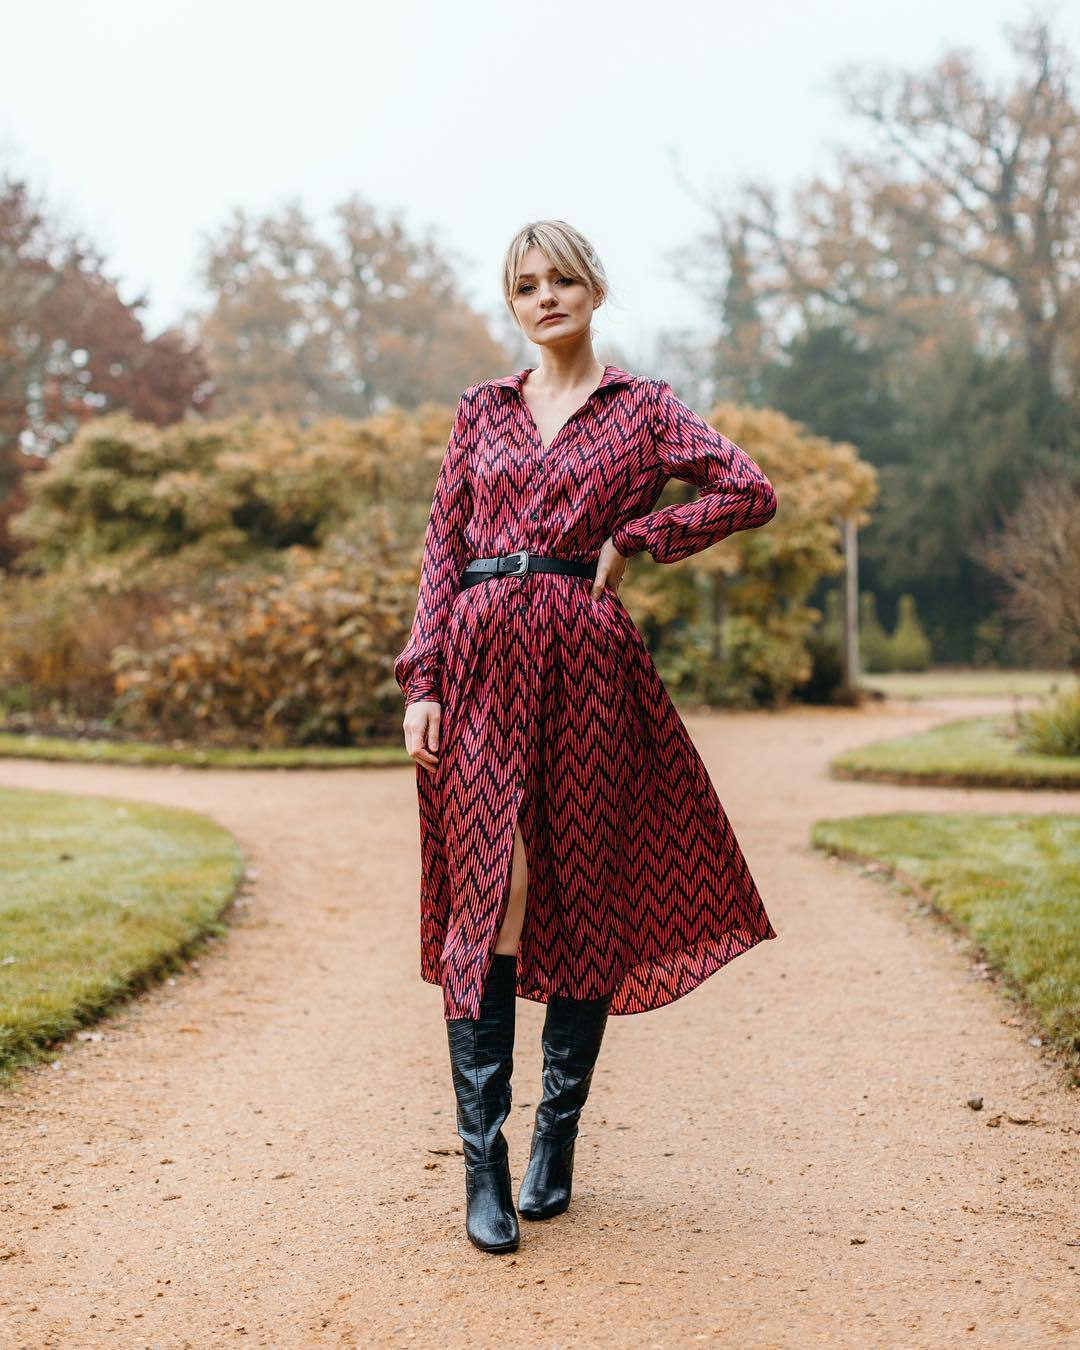 Long Sleeve Dresses With Knee High Boots , Carley \u0026 Connellan